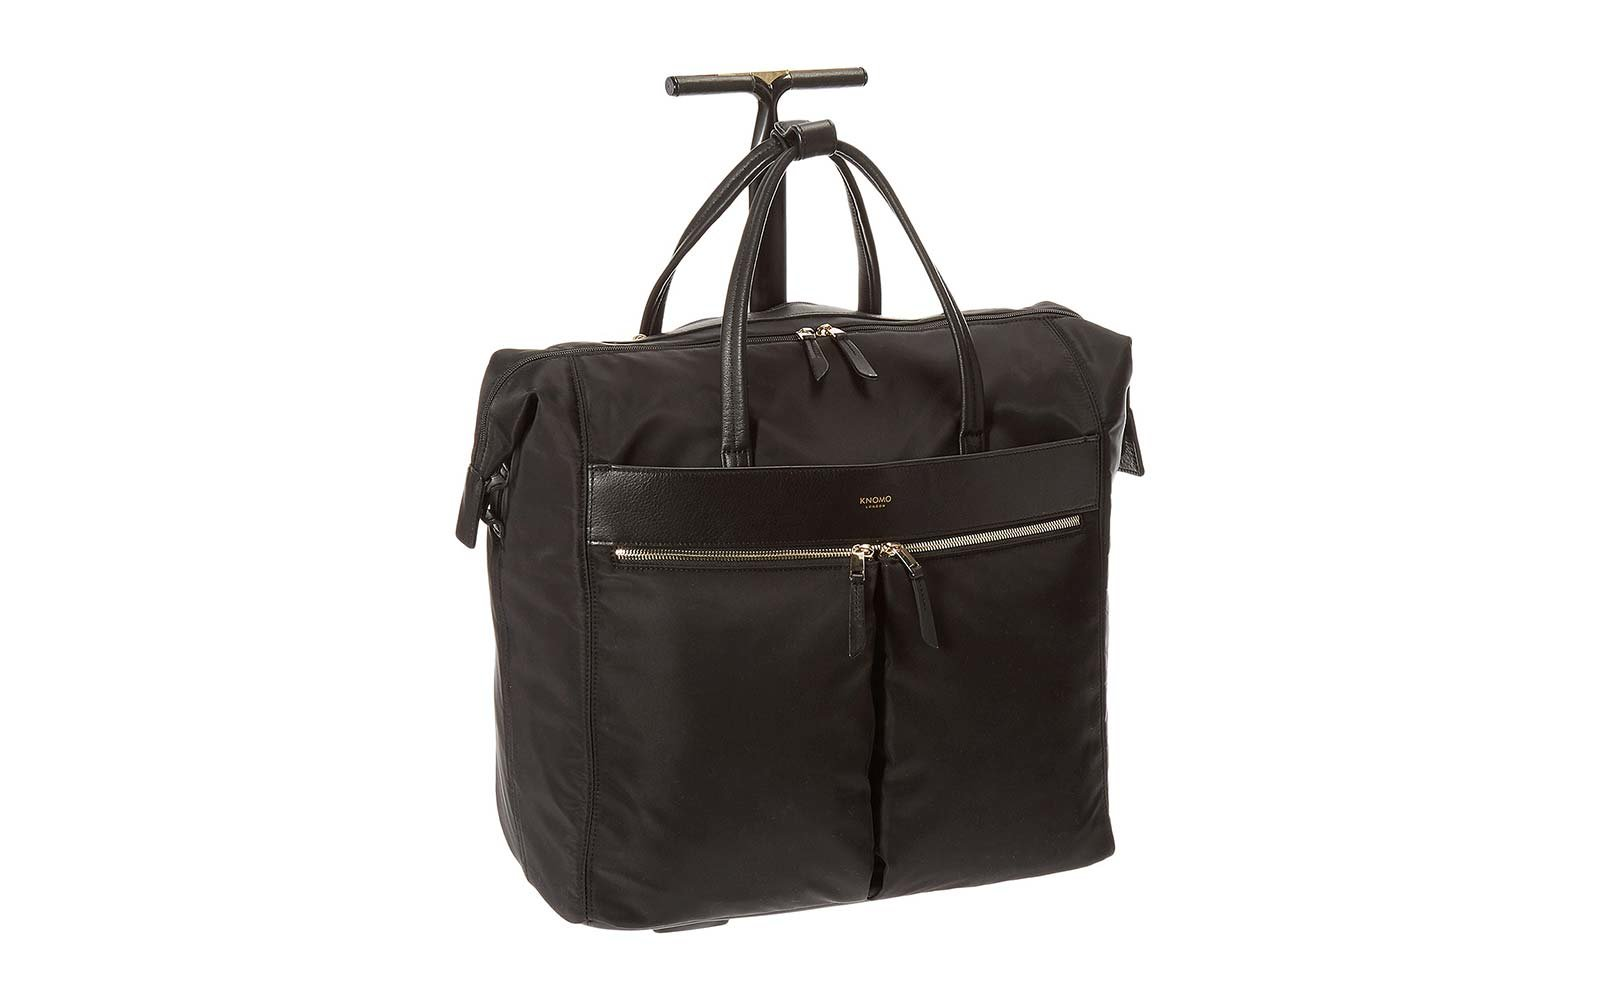 Knomo London travel luggage bag